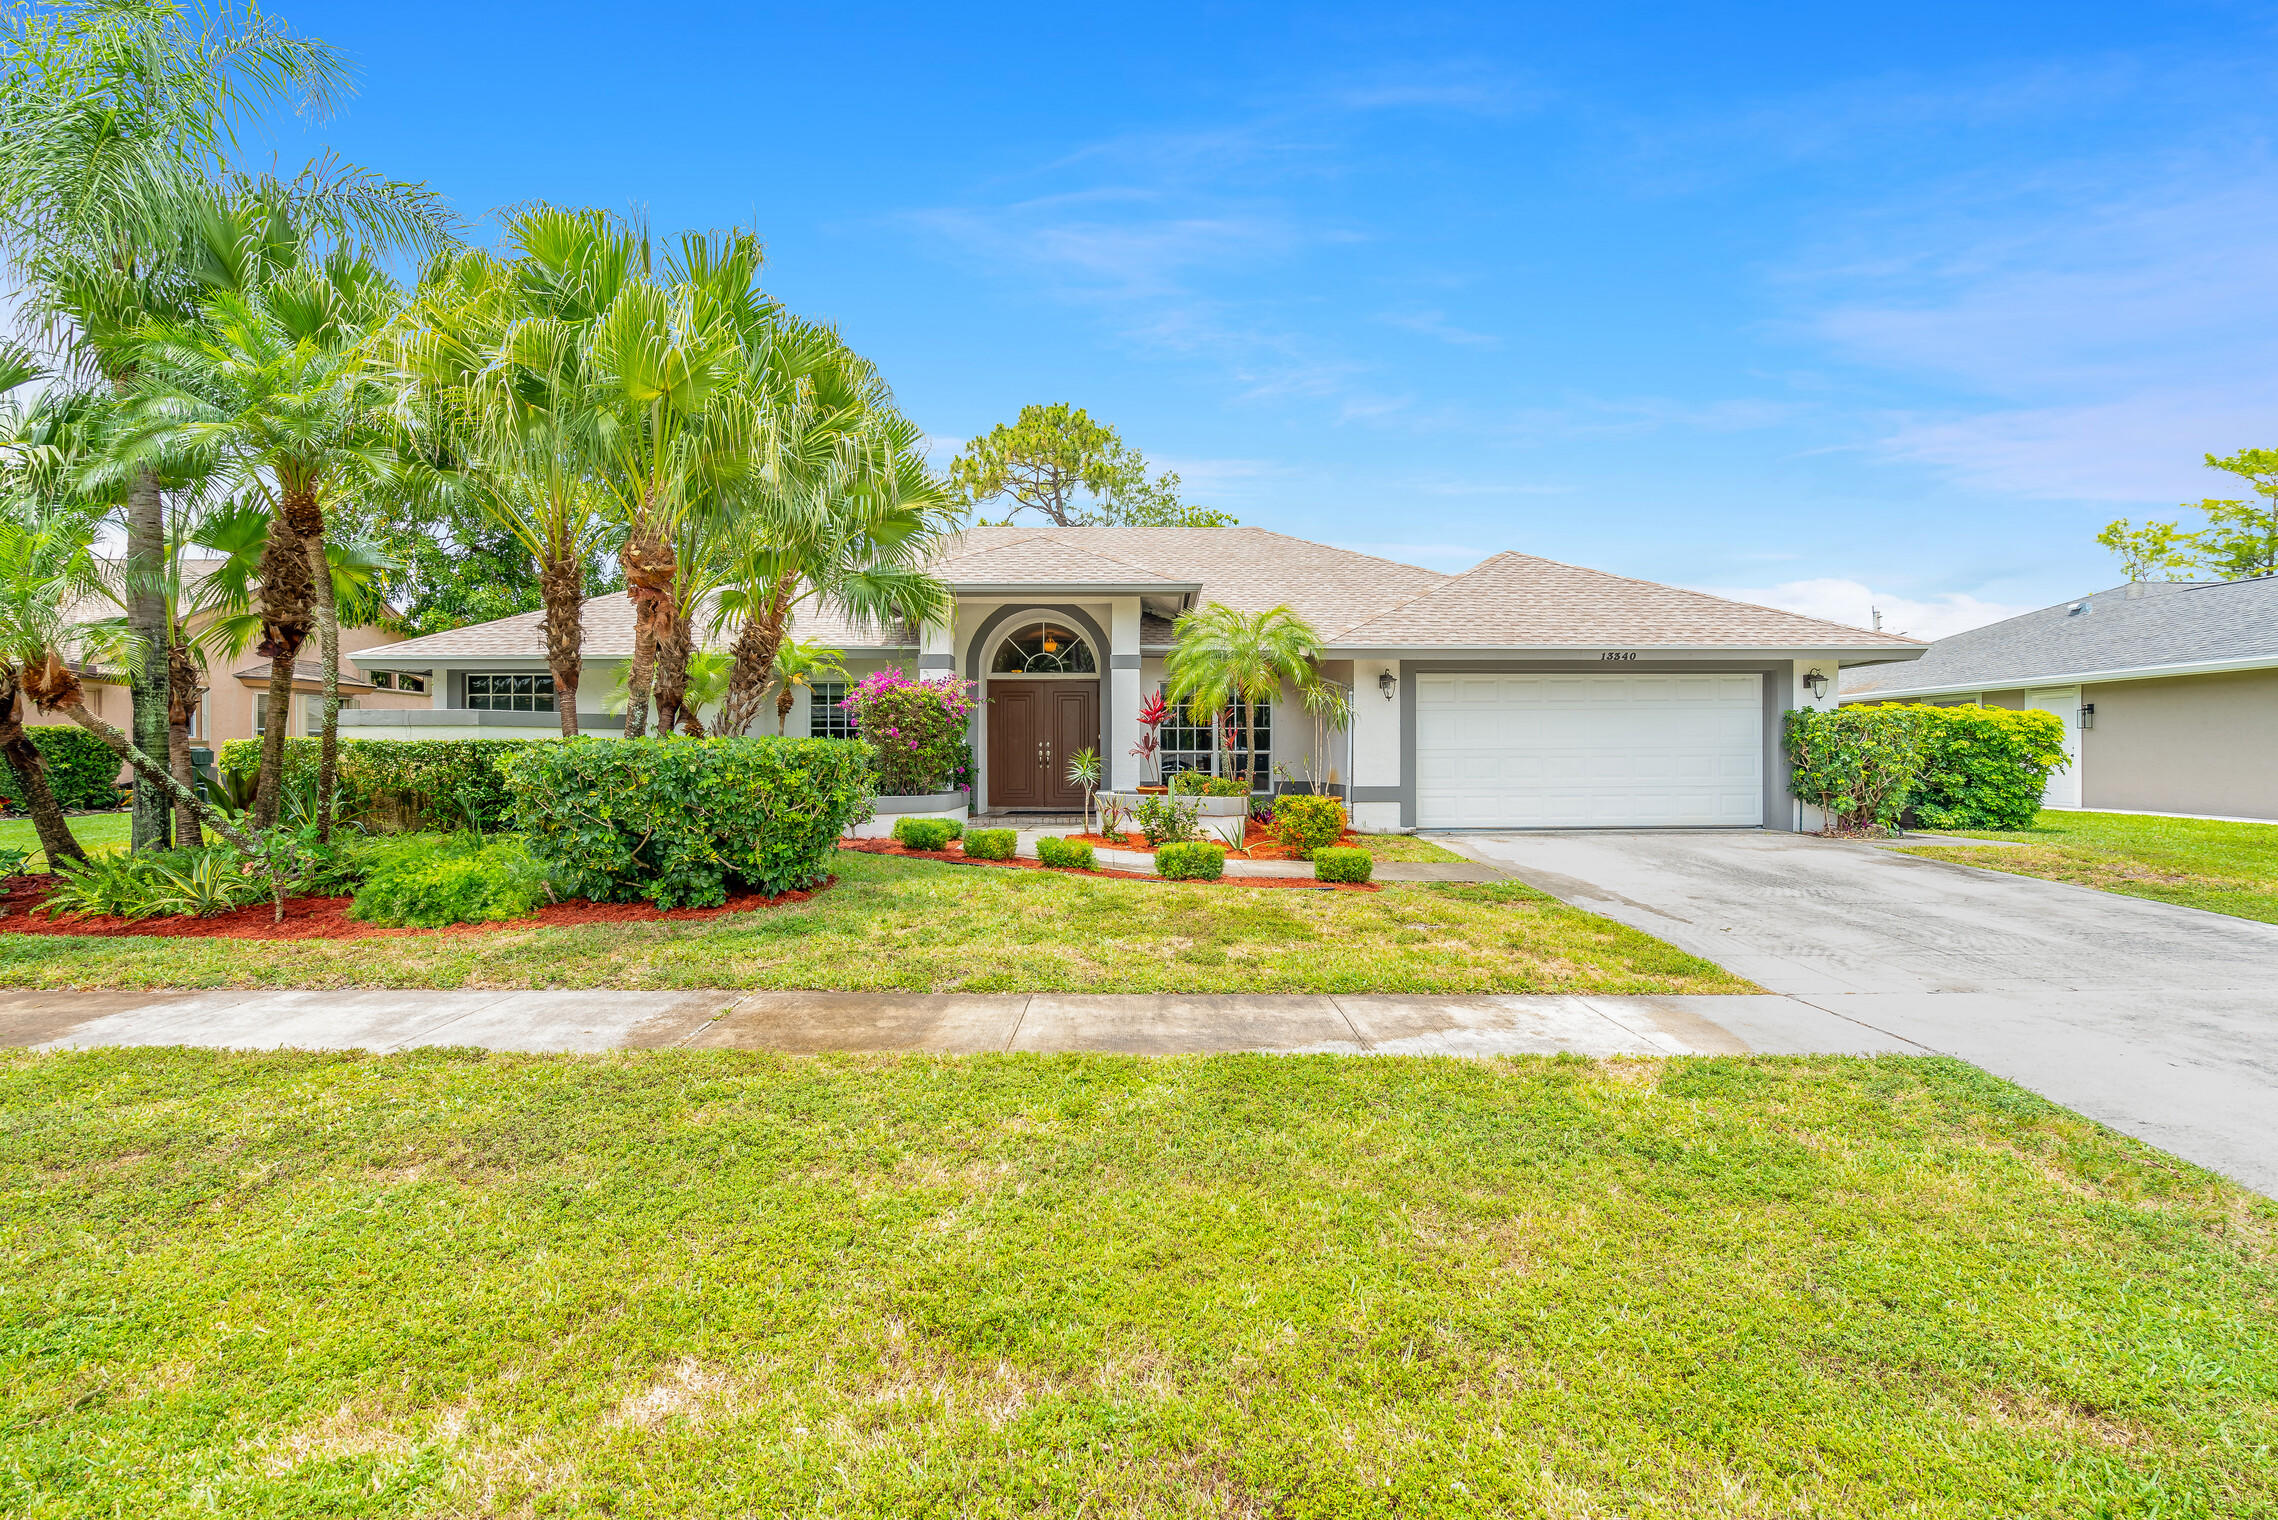 13340  Northumberland Circle  For Sale 10717802, FL